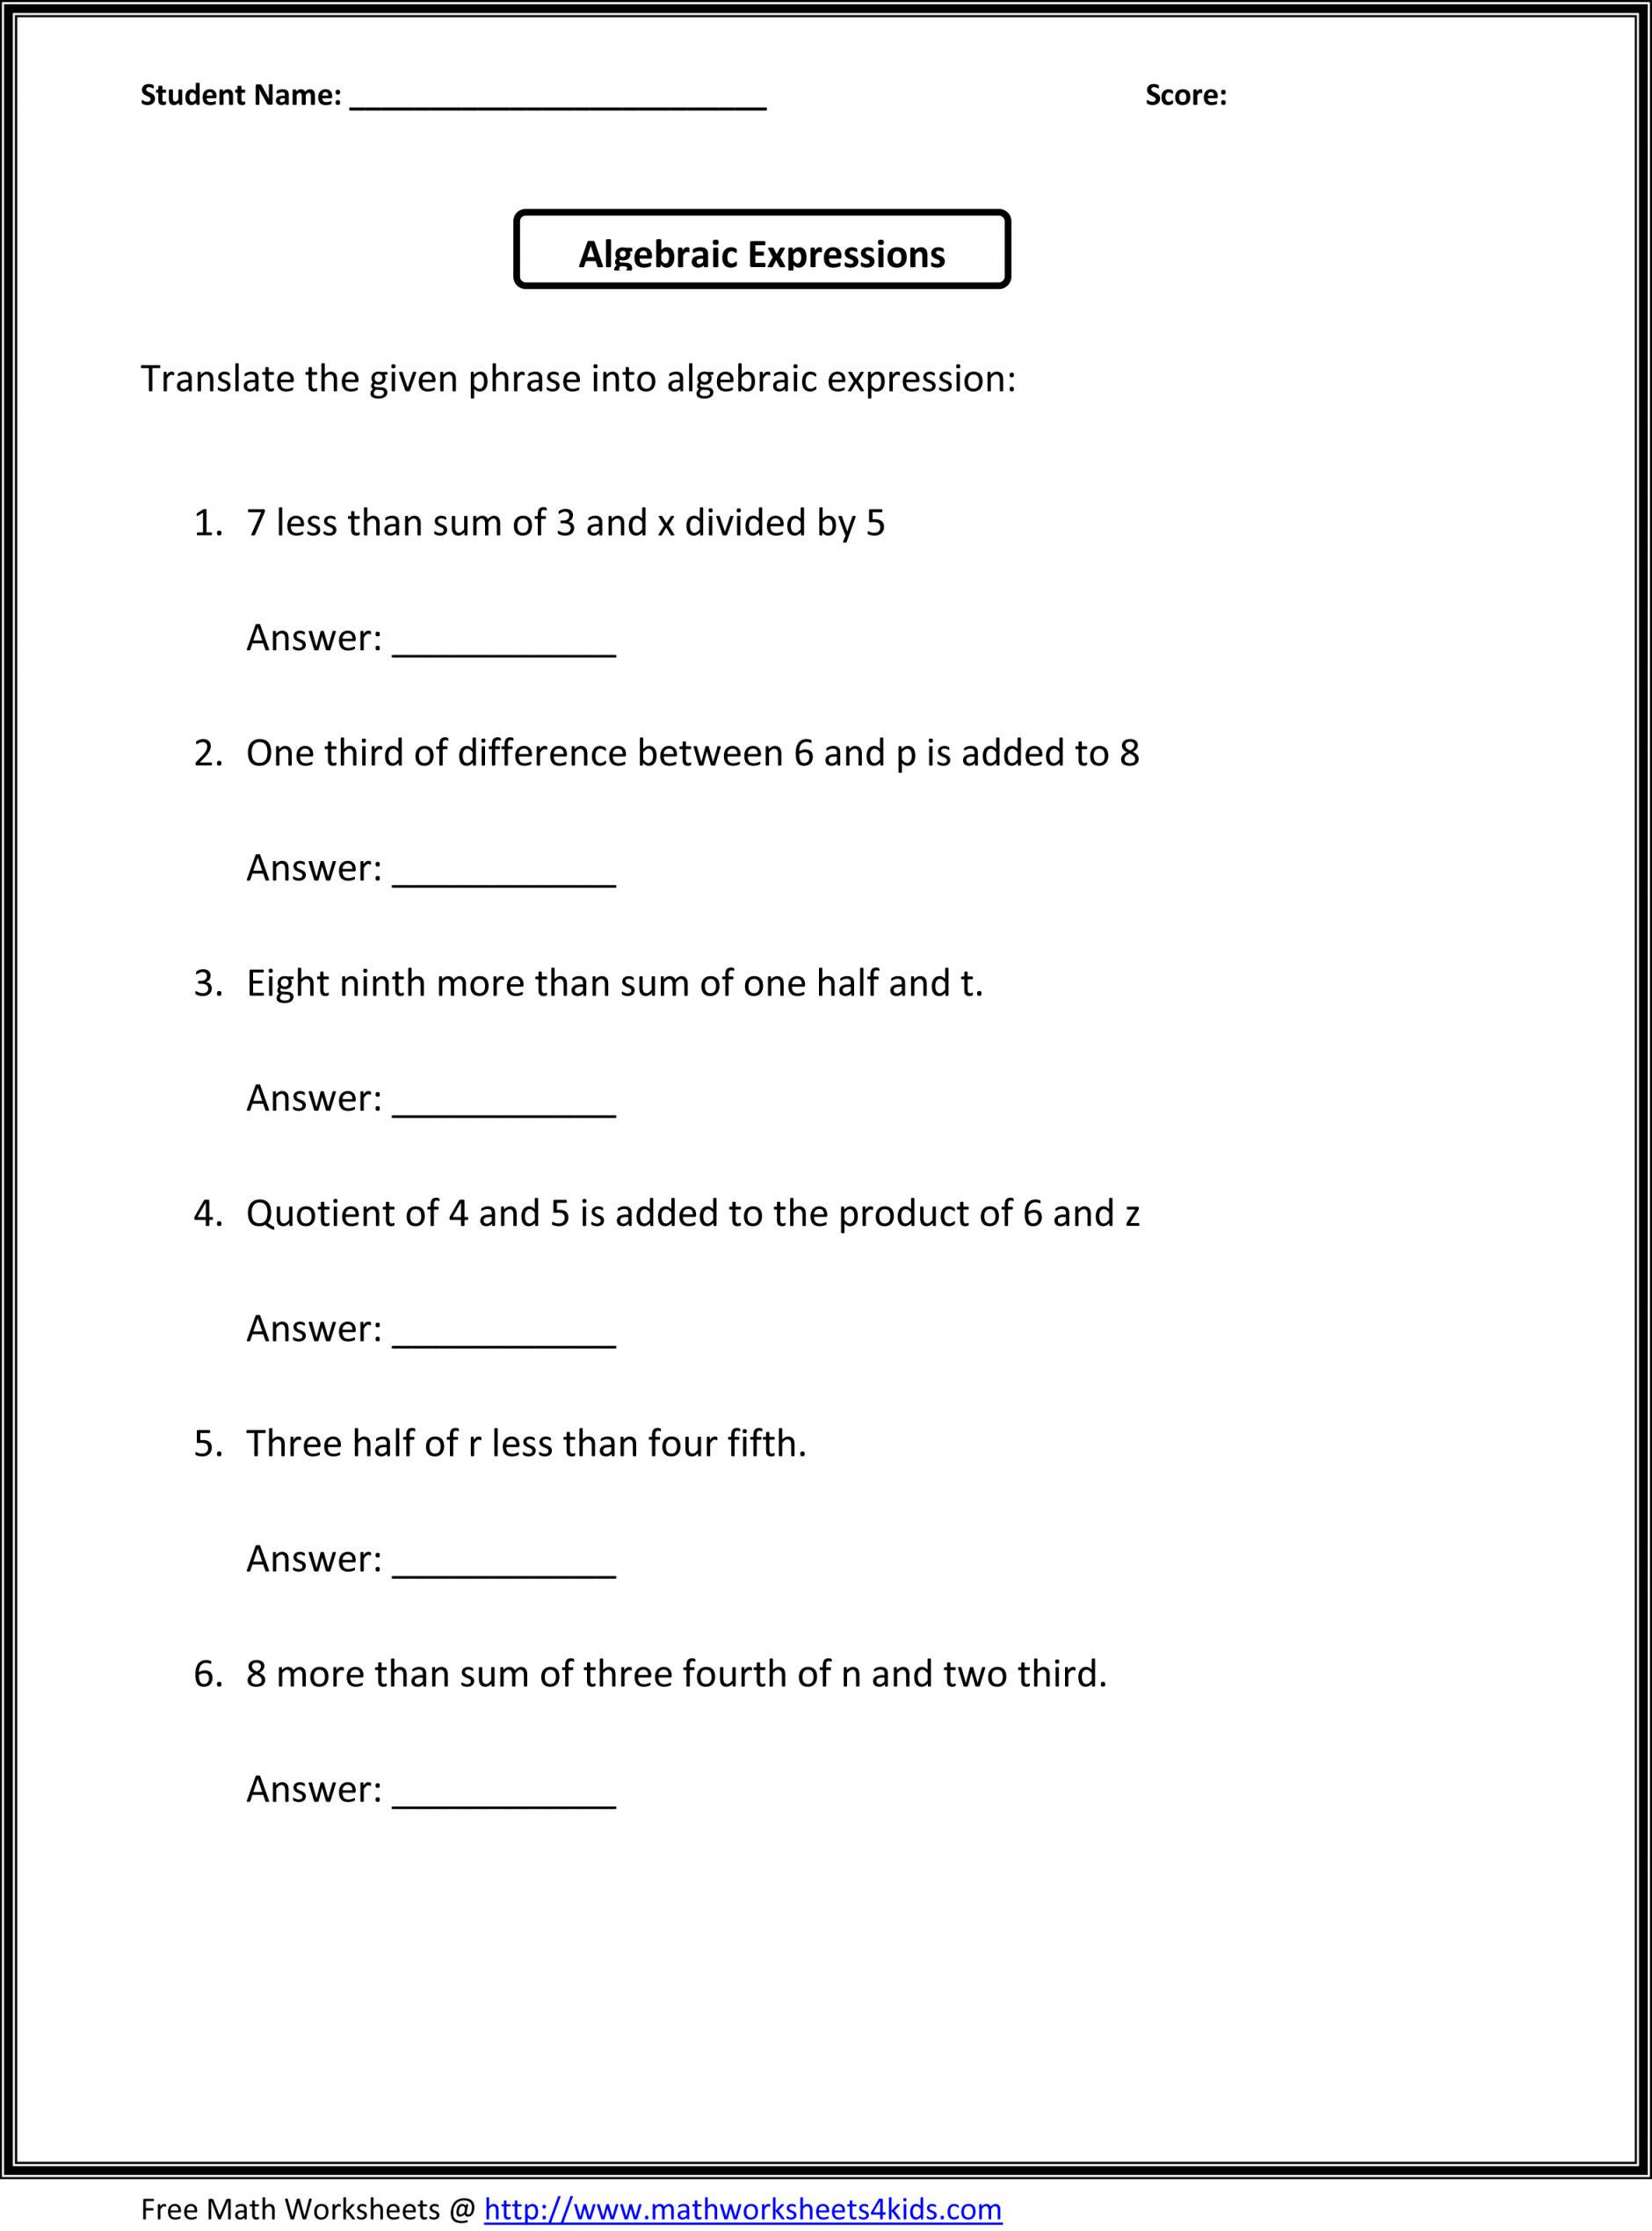 Equivalent Expressions Worksheet 6th Grade Simplify Algebraic Expressions Worksheets 6th Grade